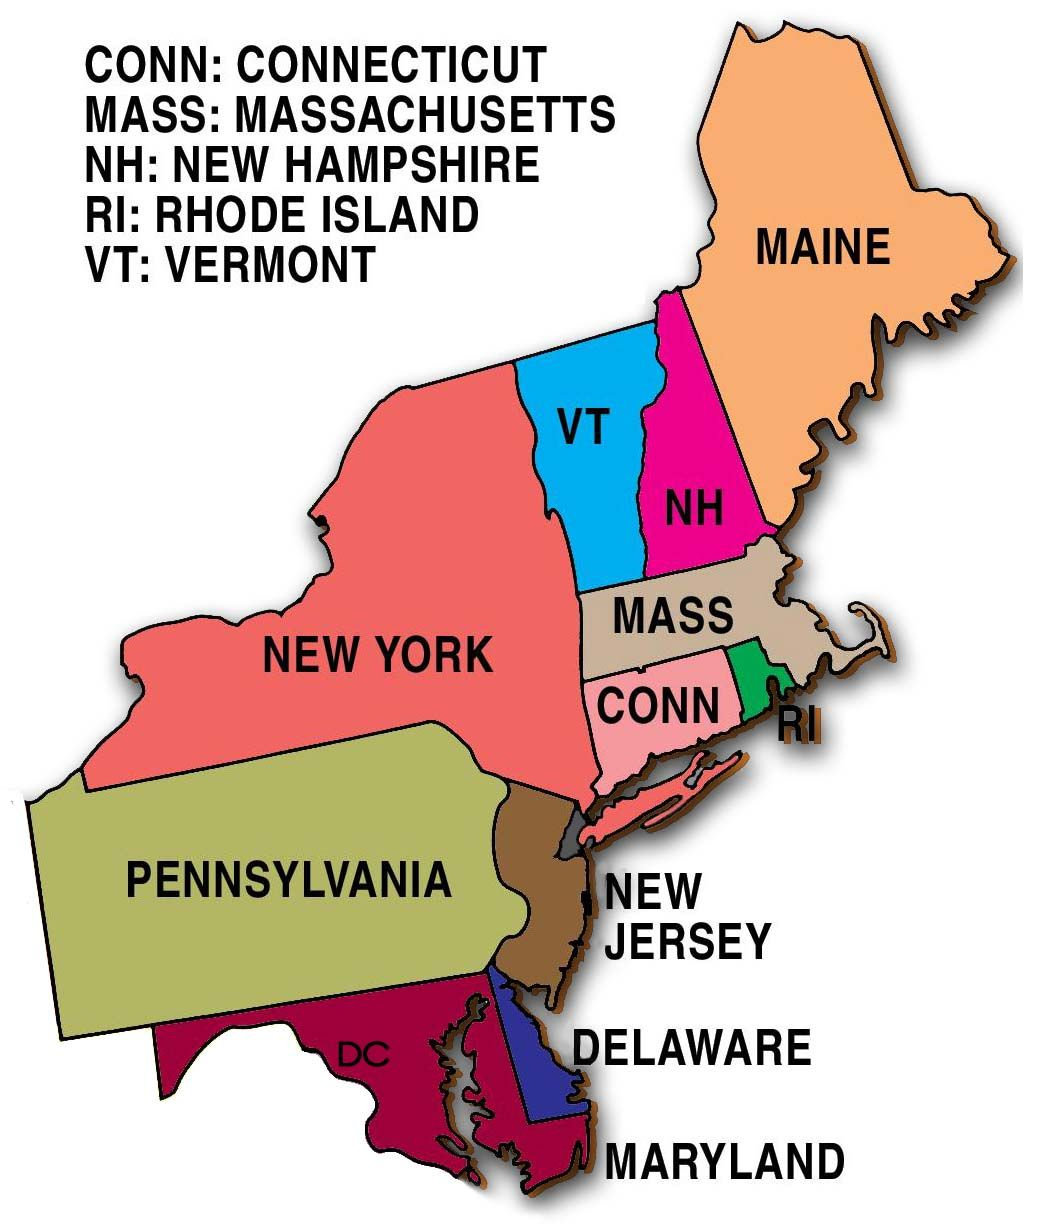 Ne Us States Map Related image | United states map, North east map, New england states